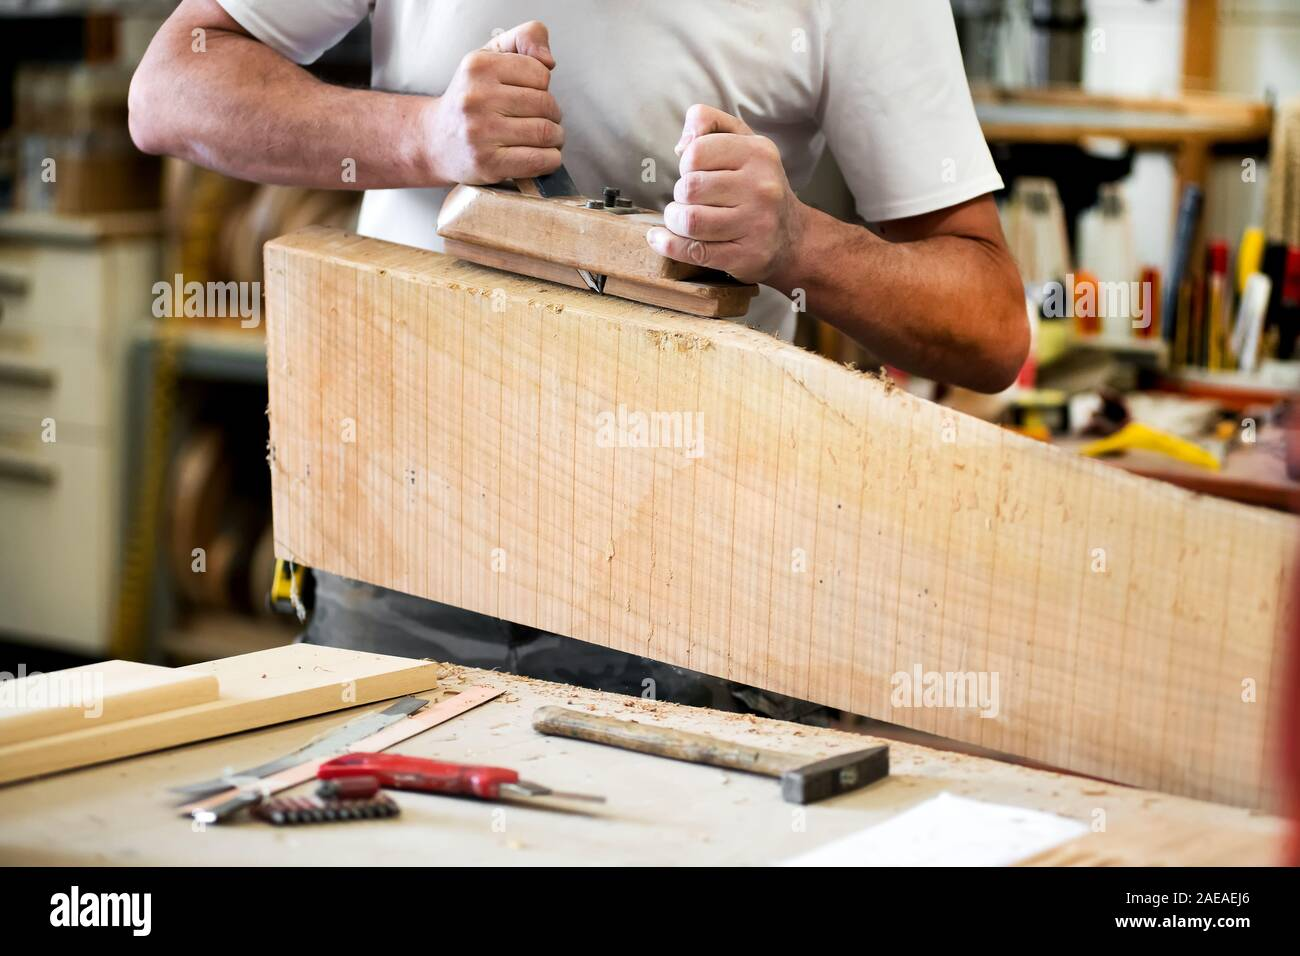 Carpenter working with a planer on a block of wood smoothing the surface in a close up of his hands and tools on the workbench Stock Photo